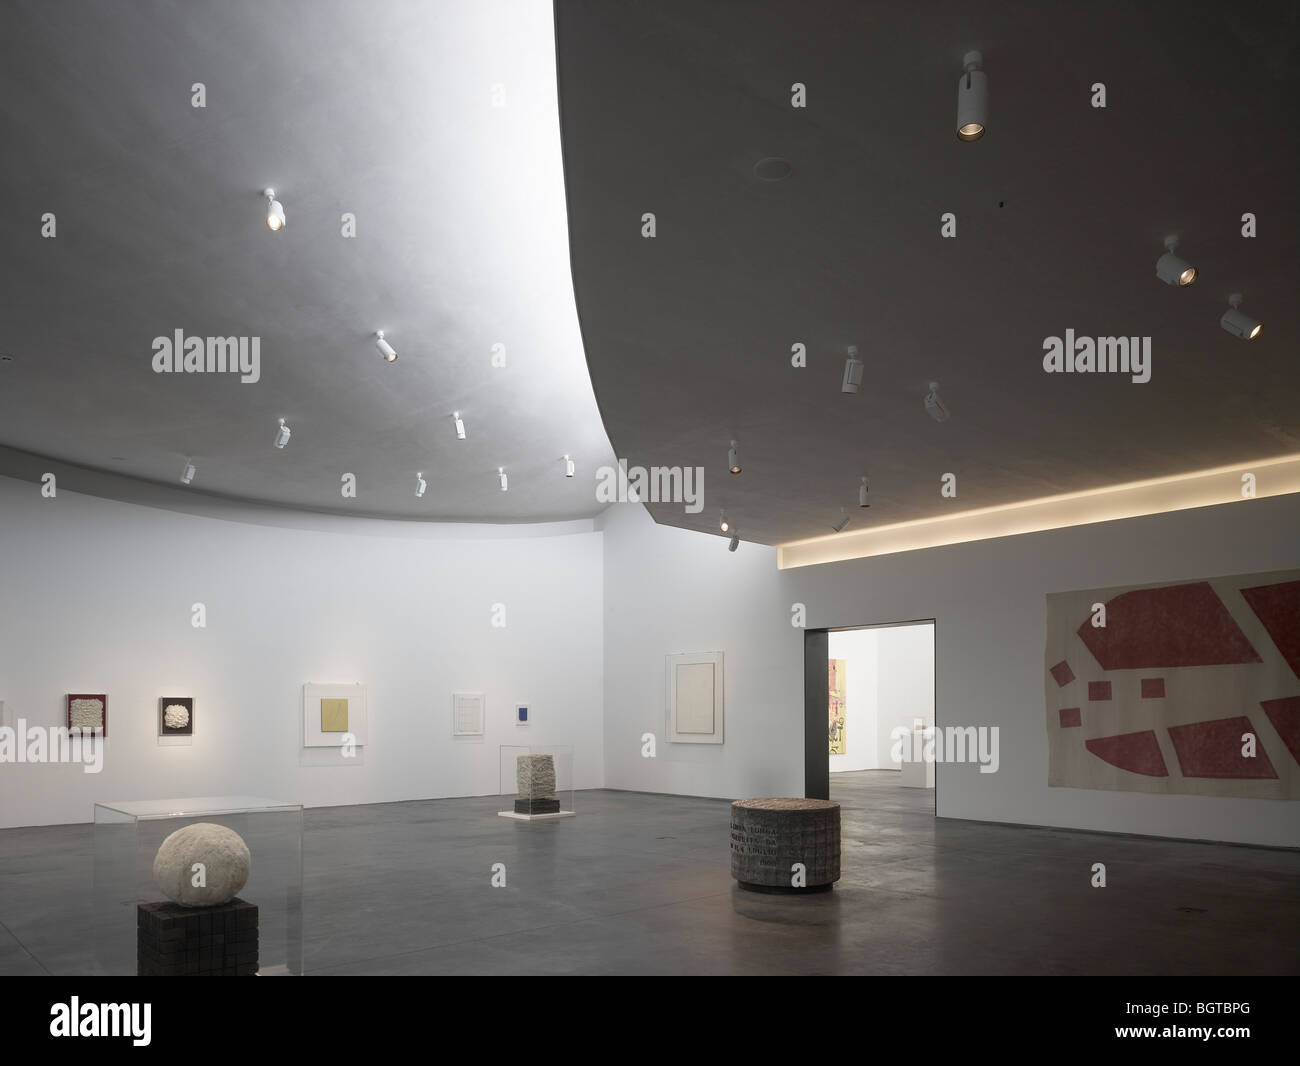 herning art center, denmark - main gallery space Stock Photo